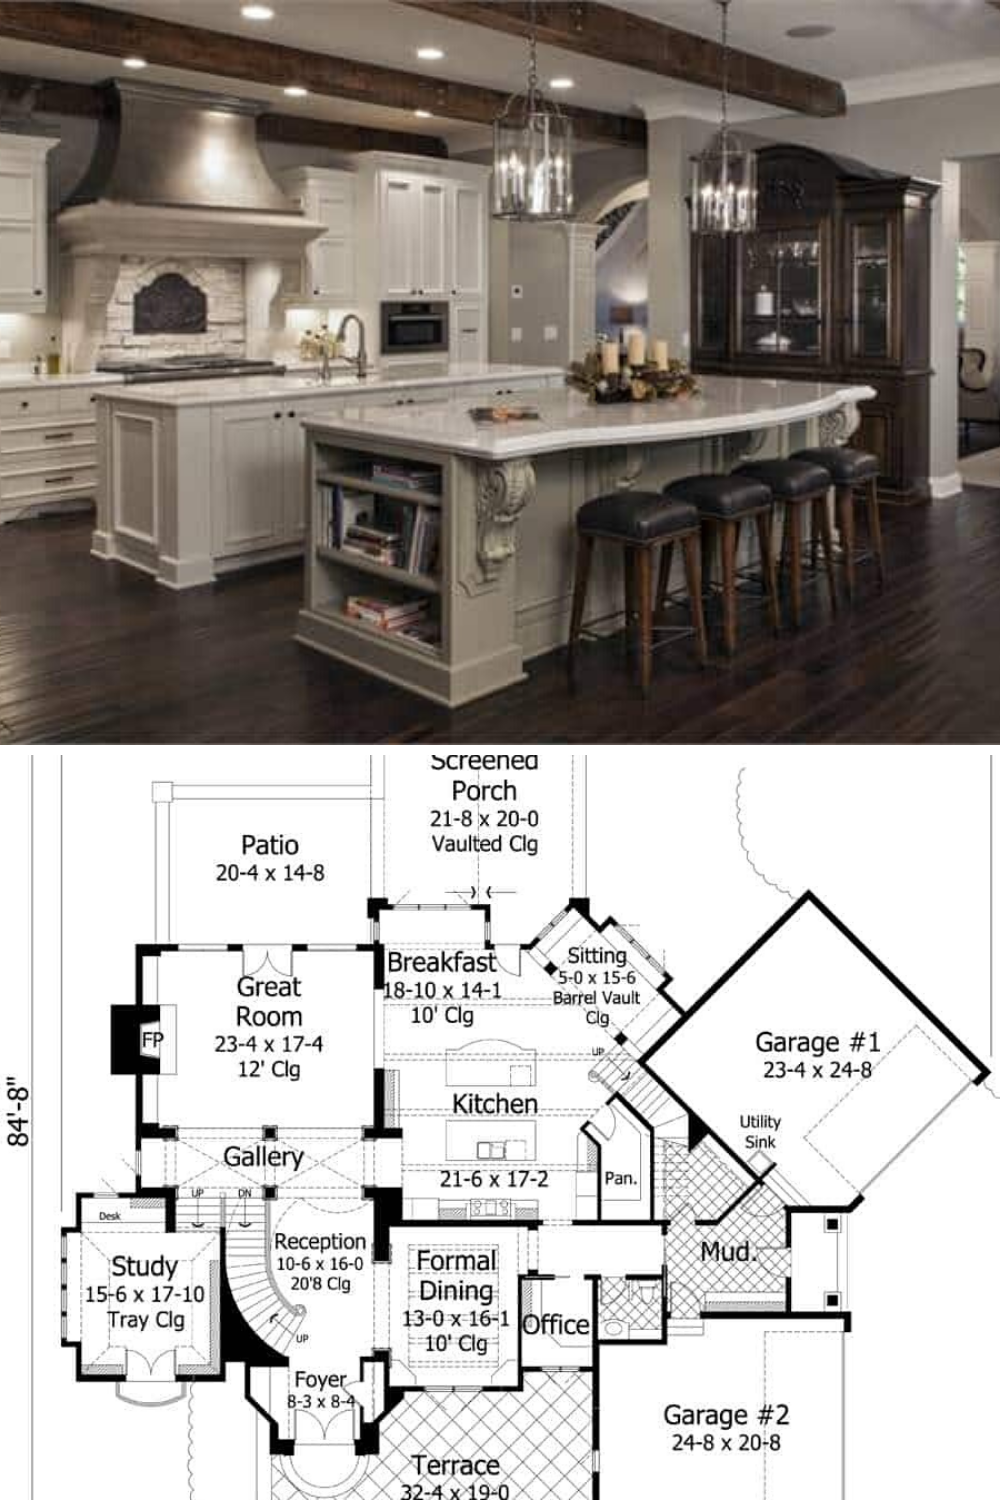 Two Story 4 Bedroom French Country Home Floor Plan French Country House French Country House Plans Floor Plans